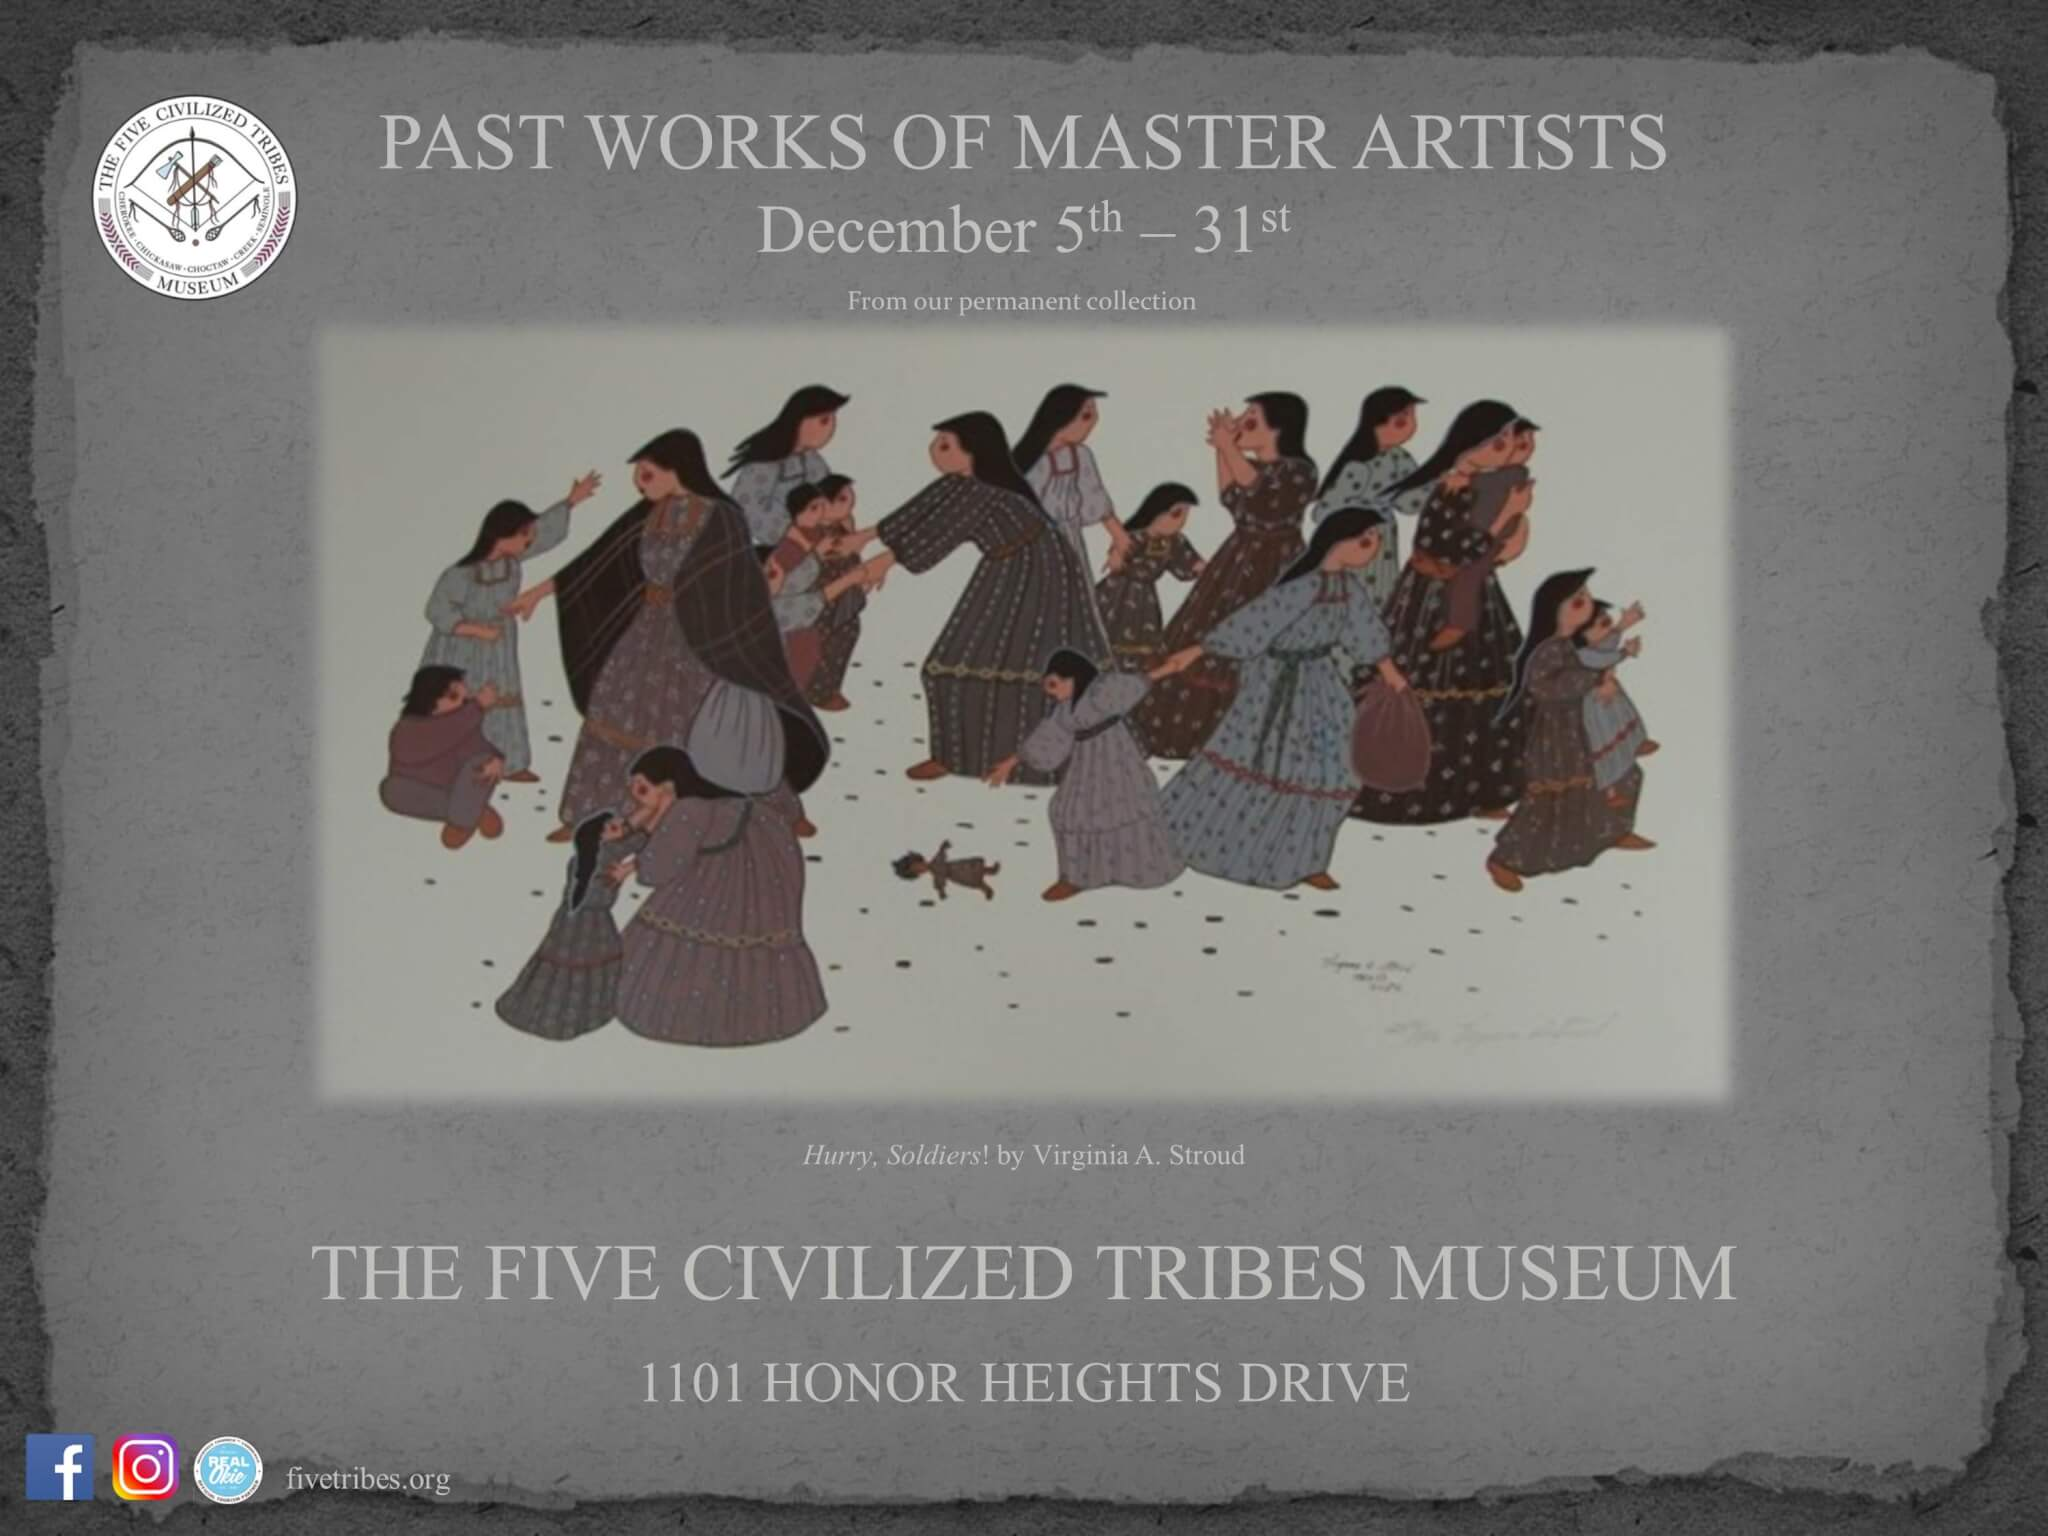 As Part Of The Museums Mission Statement Of Preserving The History Culture And Art Of The Five Civilized Tribes The Past Works Of Master Artists